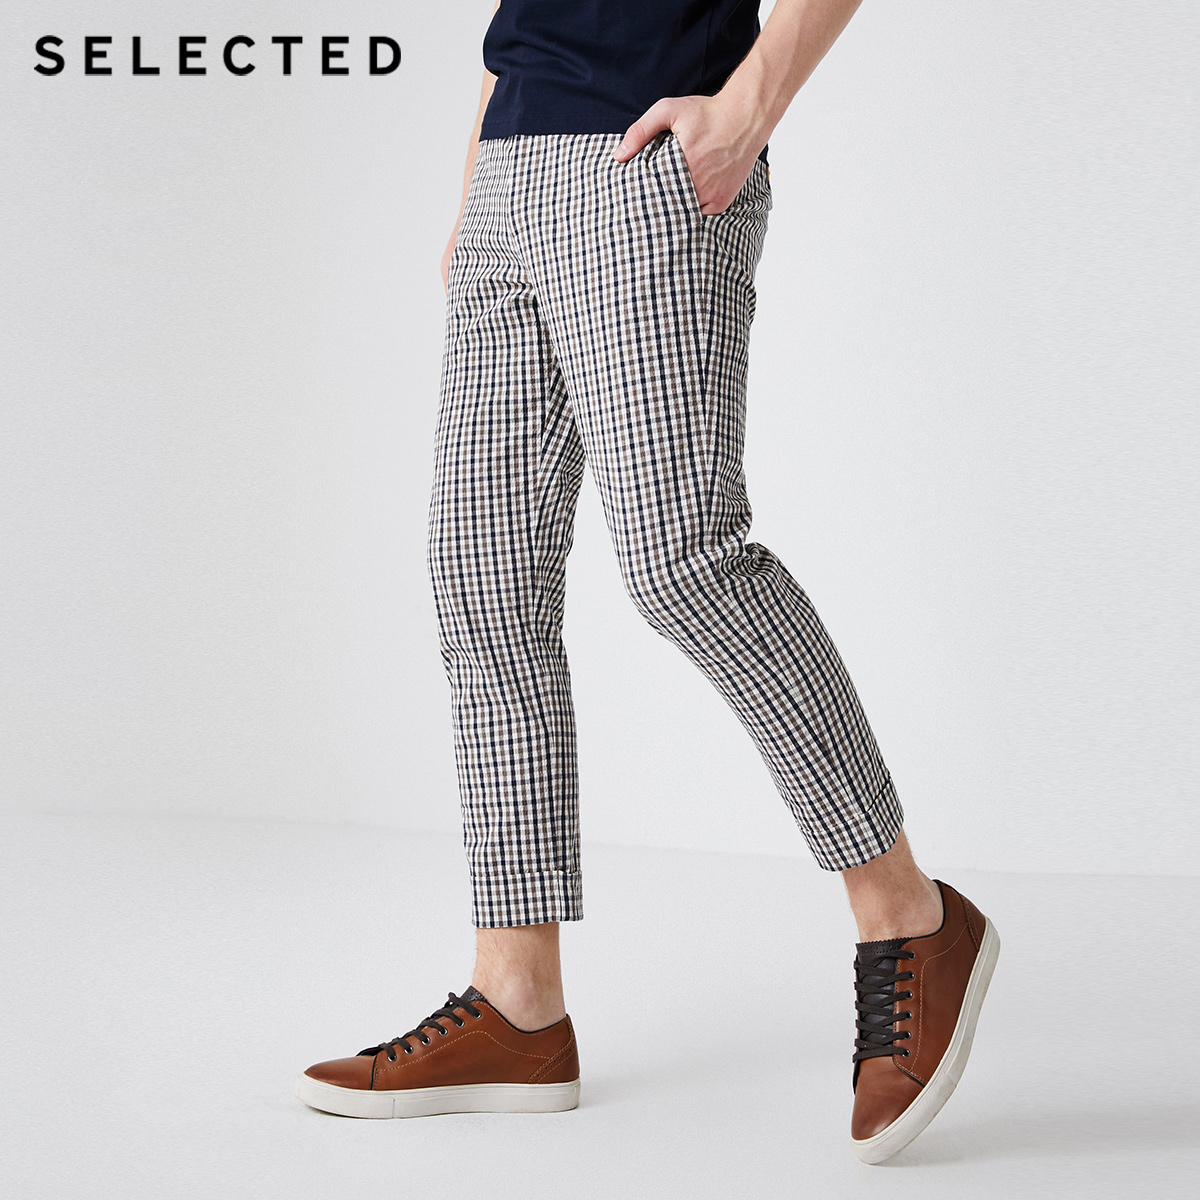 SELECTED Men's Plaid Cotton Crop Harem Pants S|419214561 title=